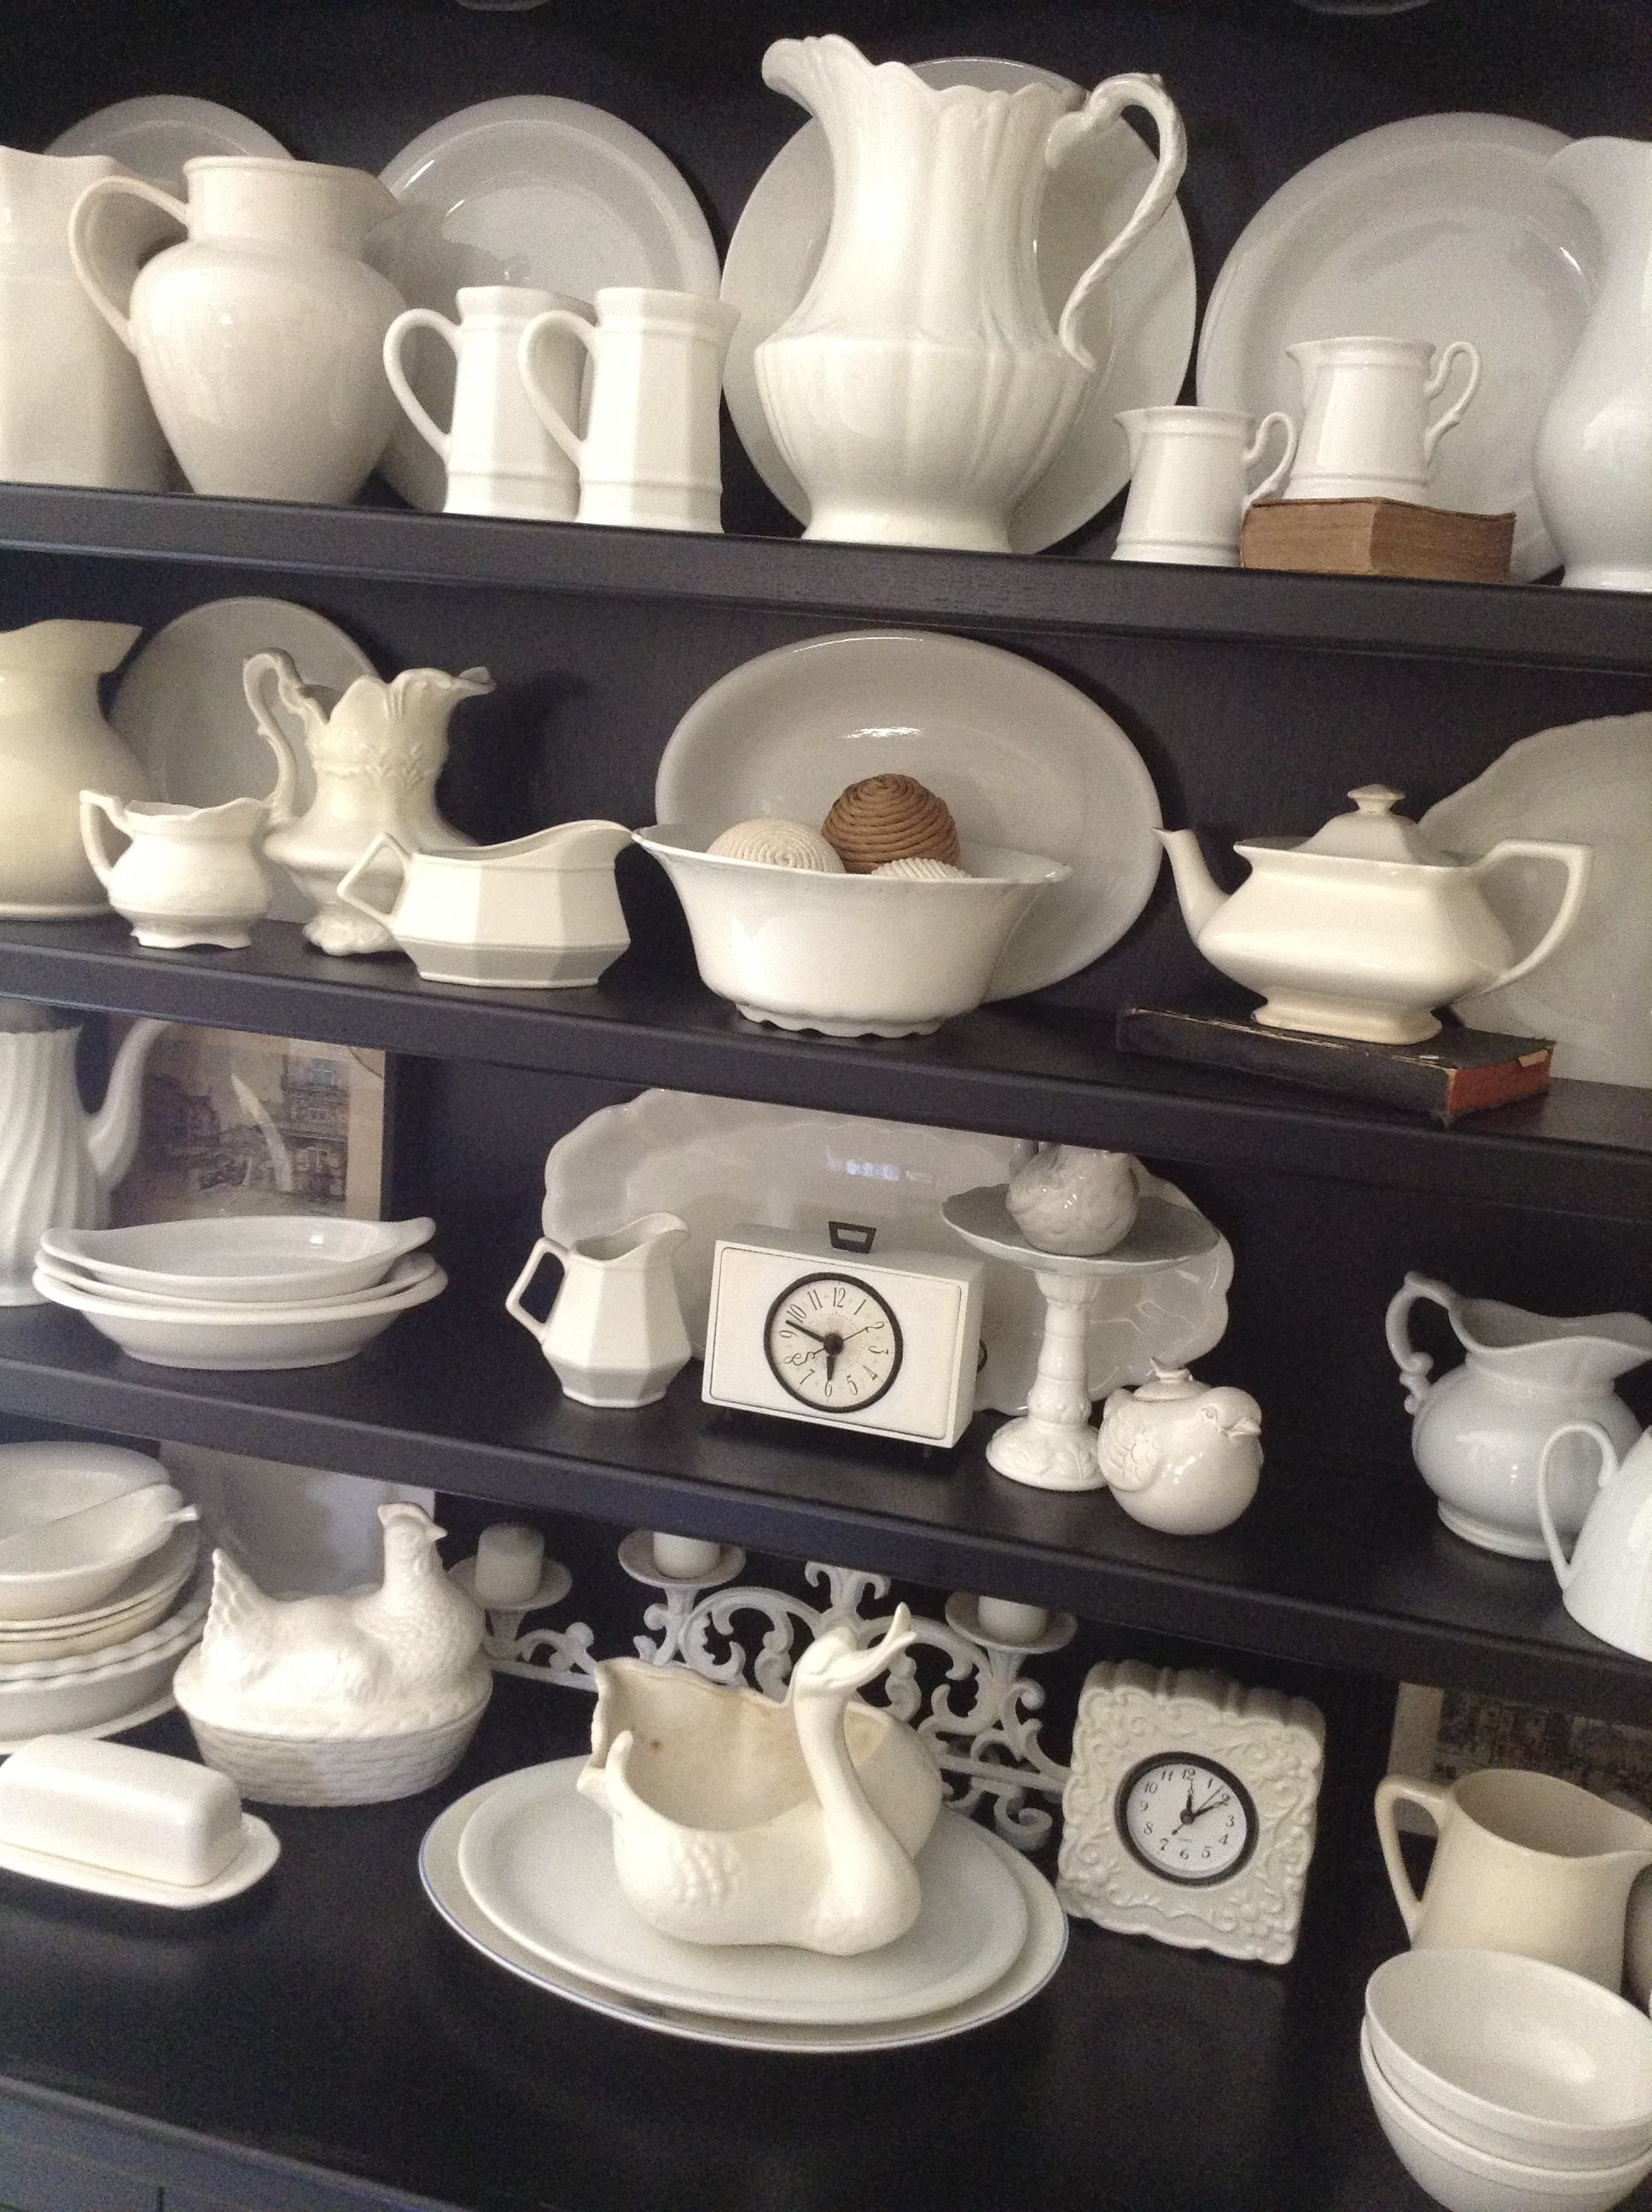 Vintage ironstone collection.